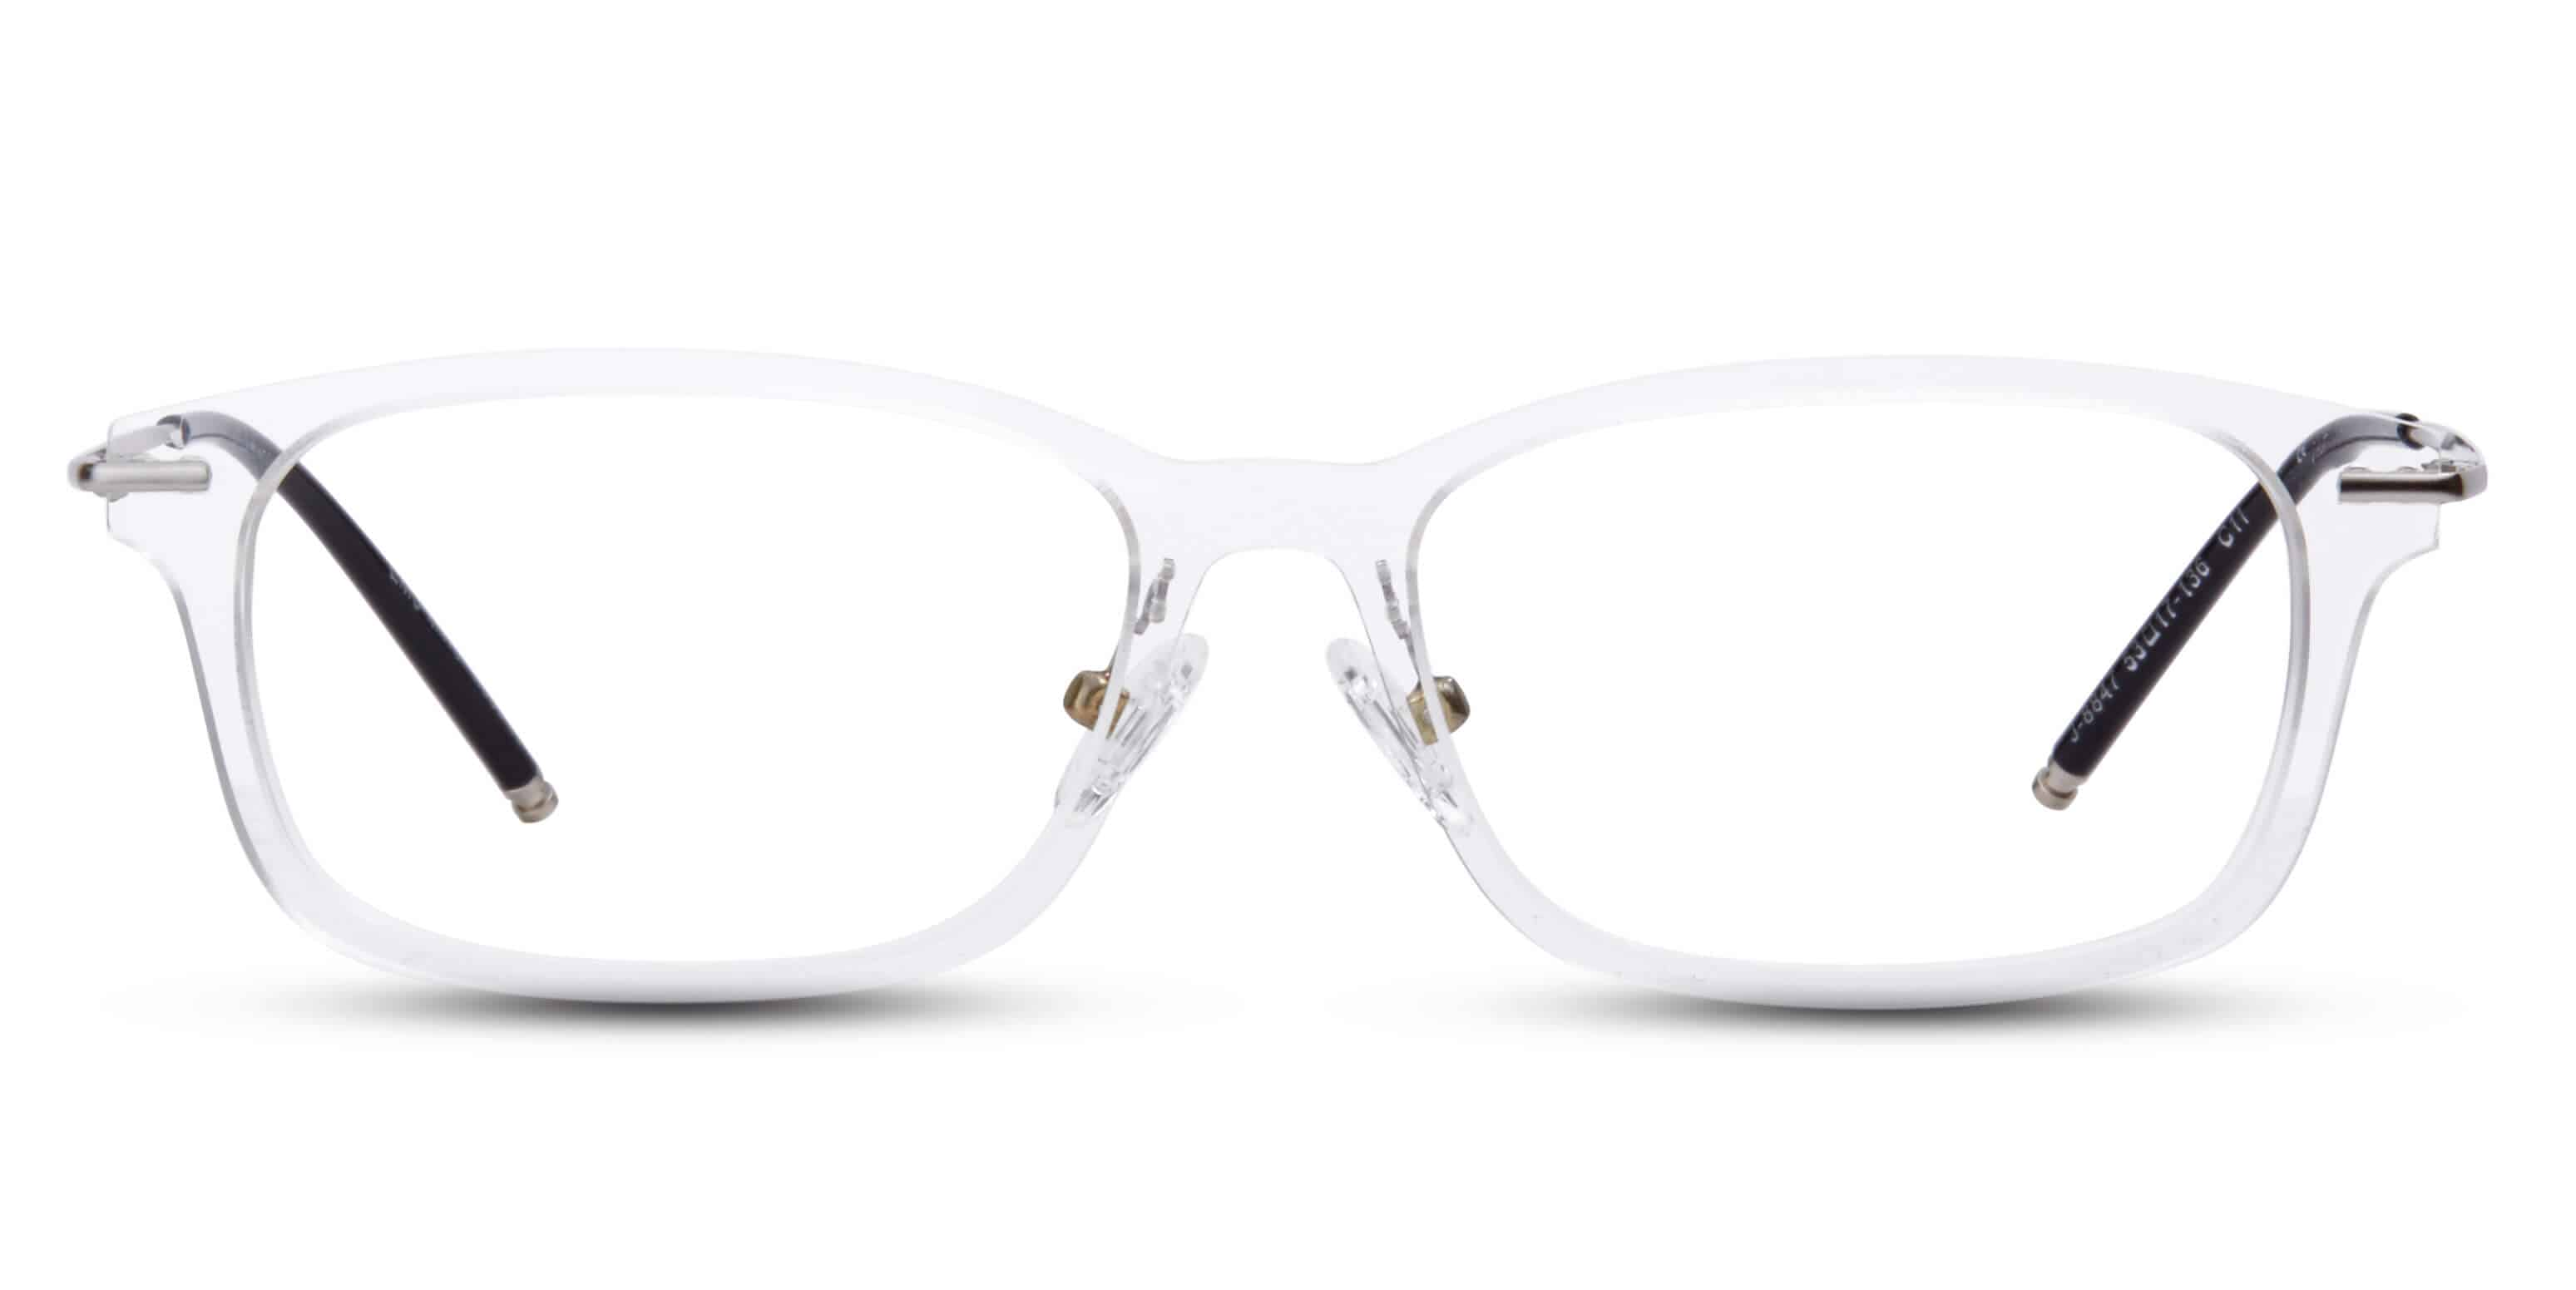 Clear plastic with metal temples